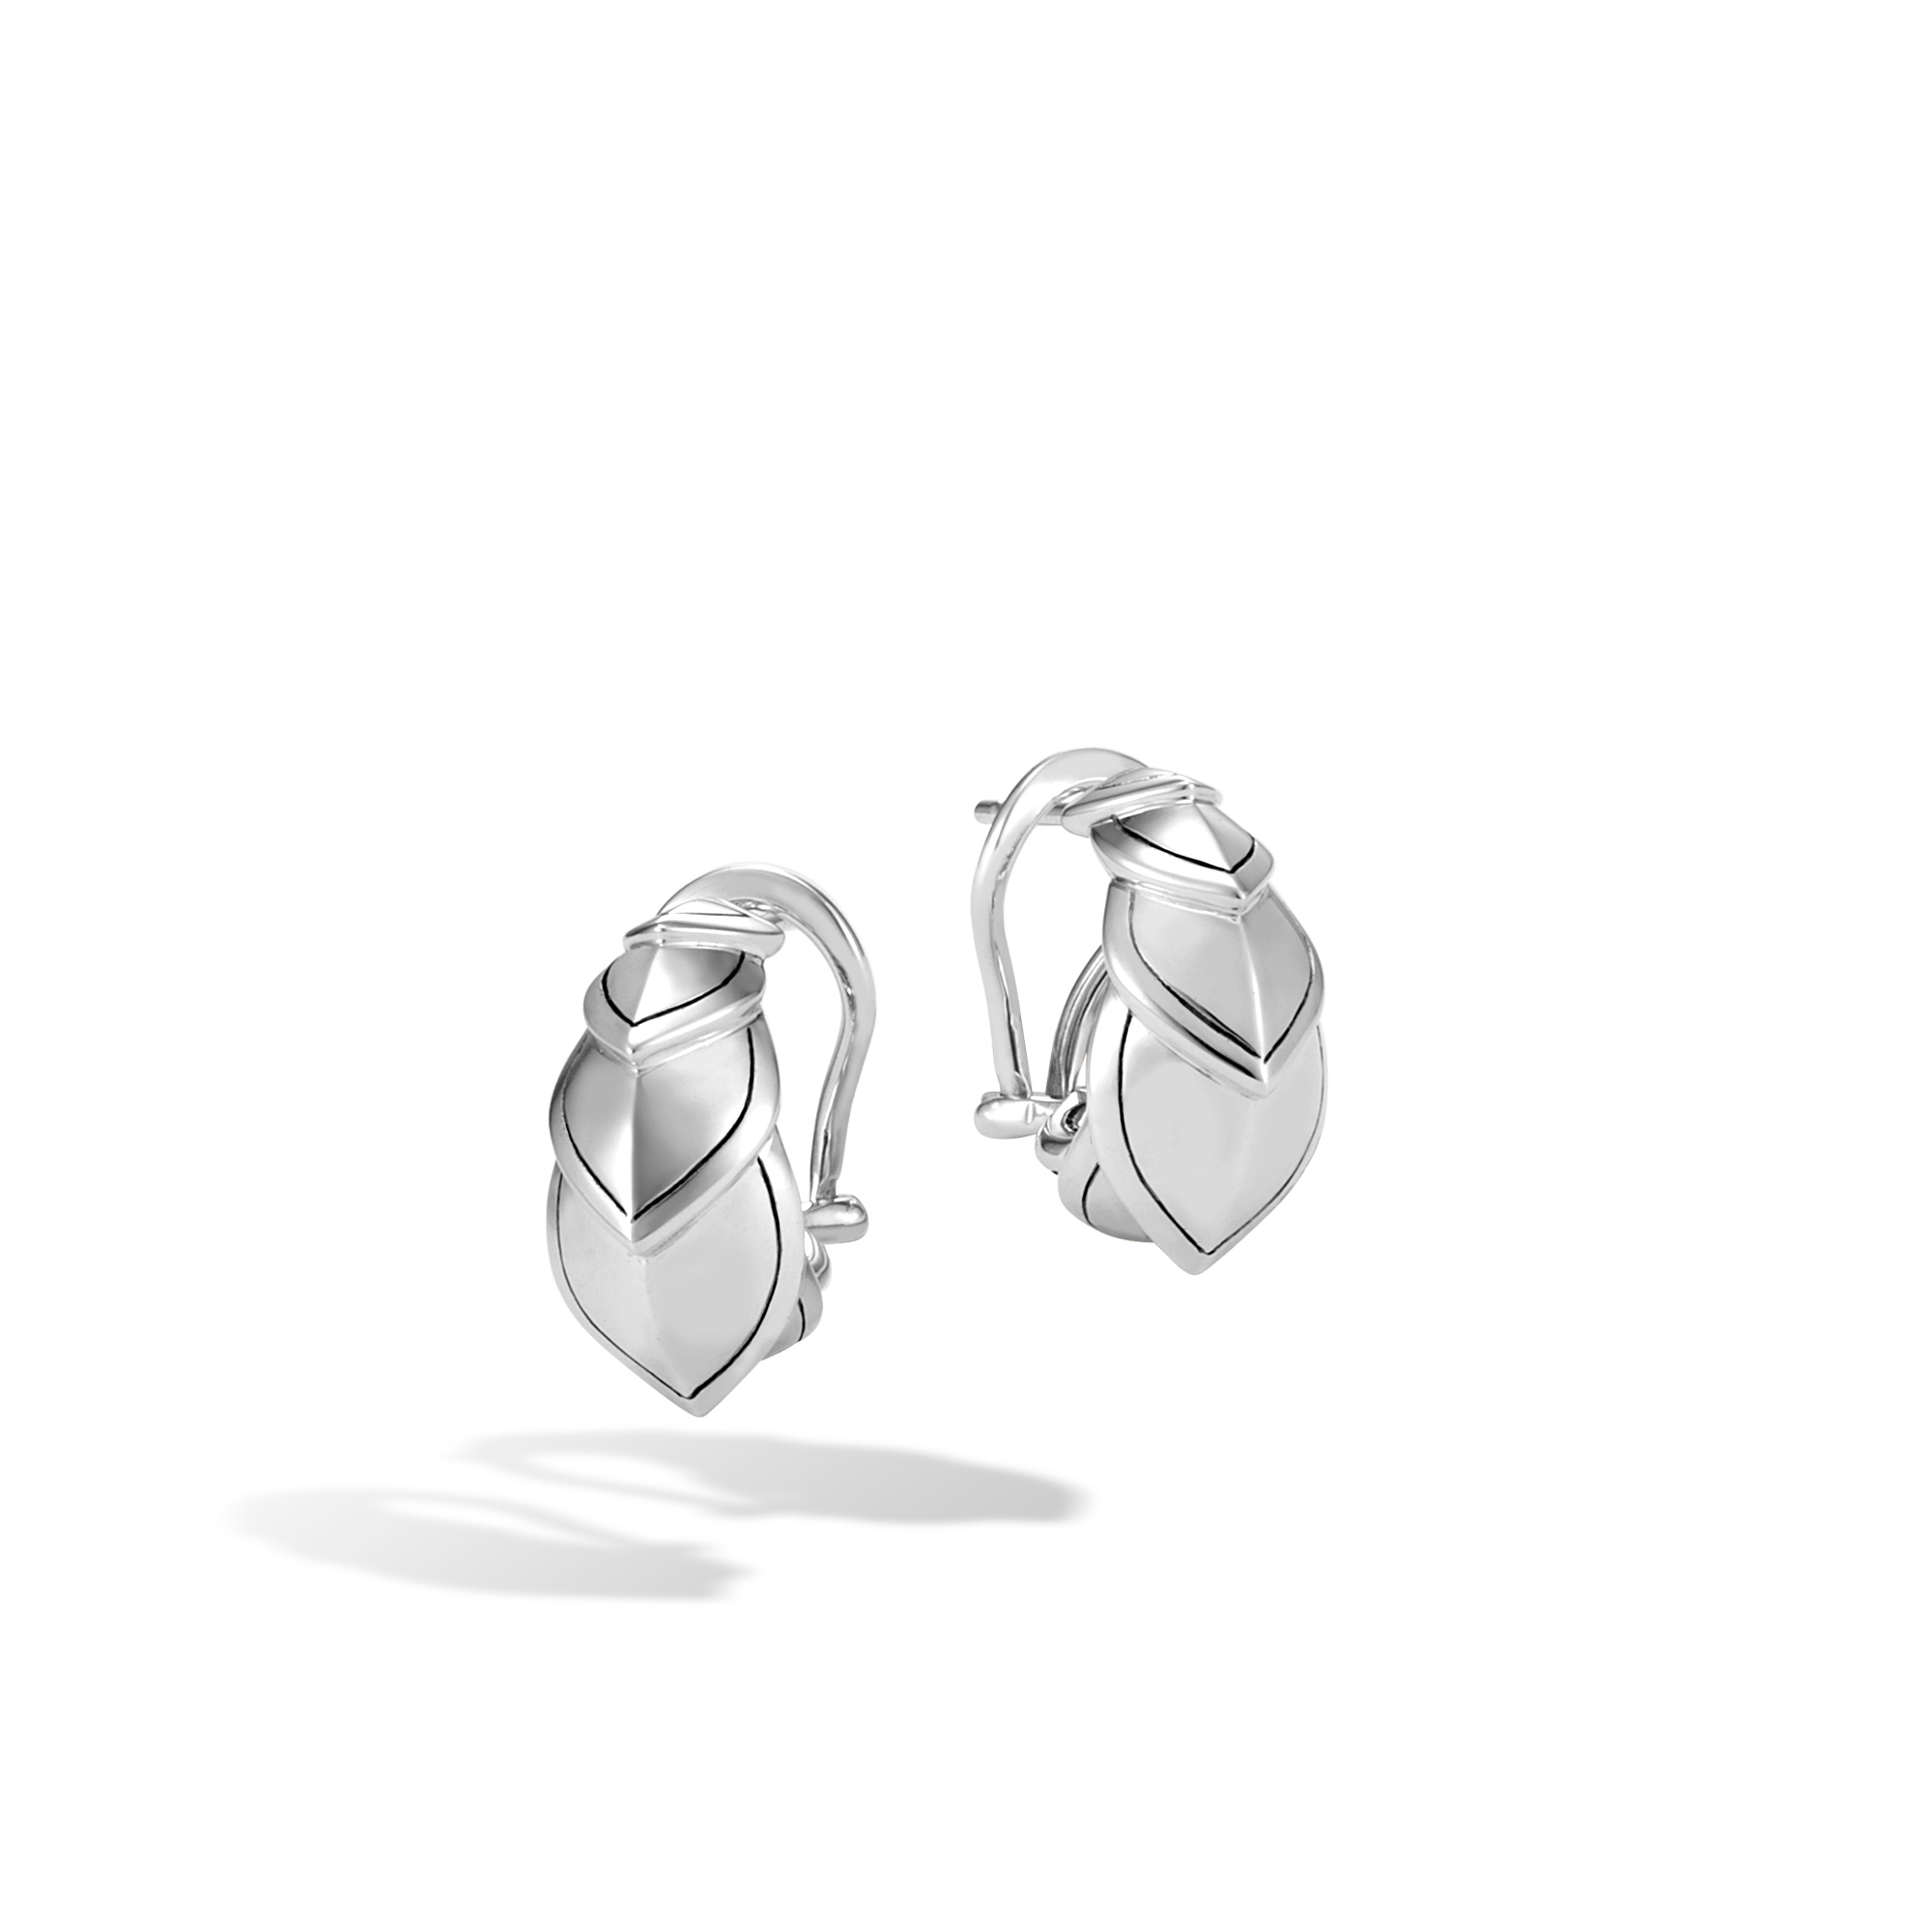 John Hardy  Sterling Silver    Silver Earrings EB6645